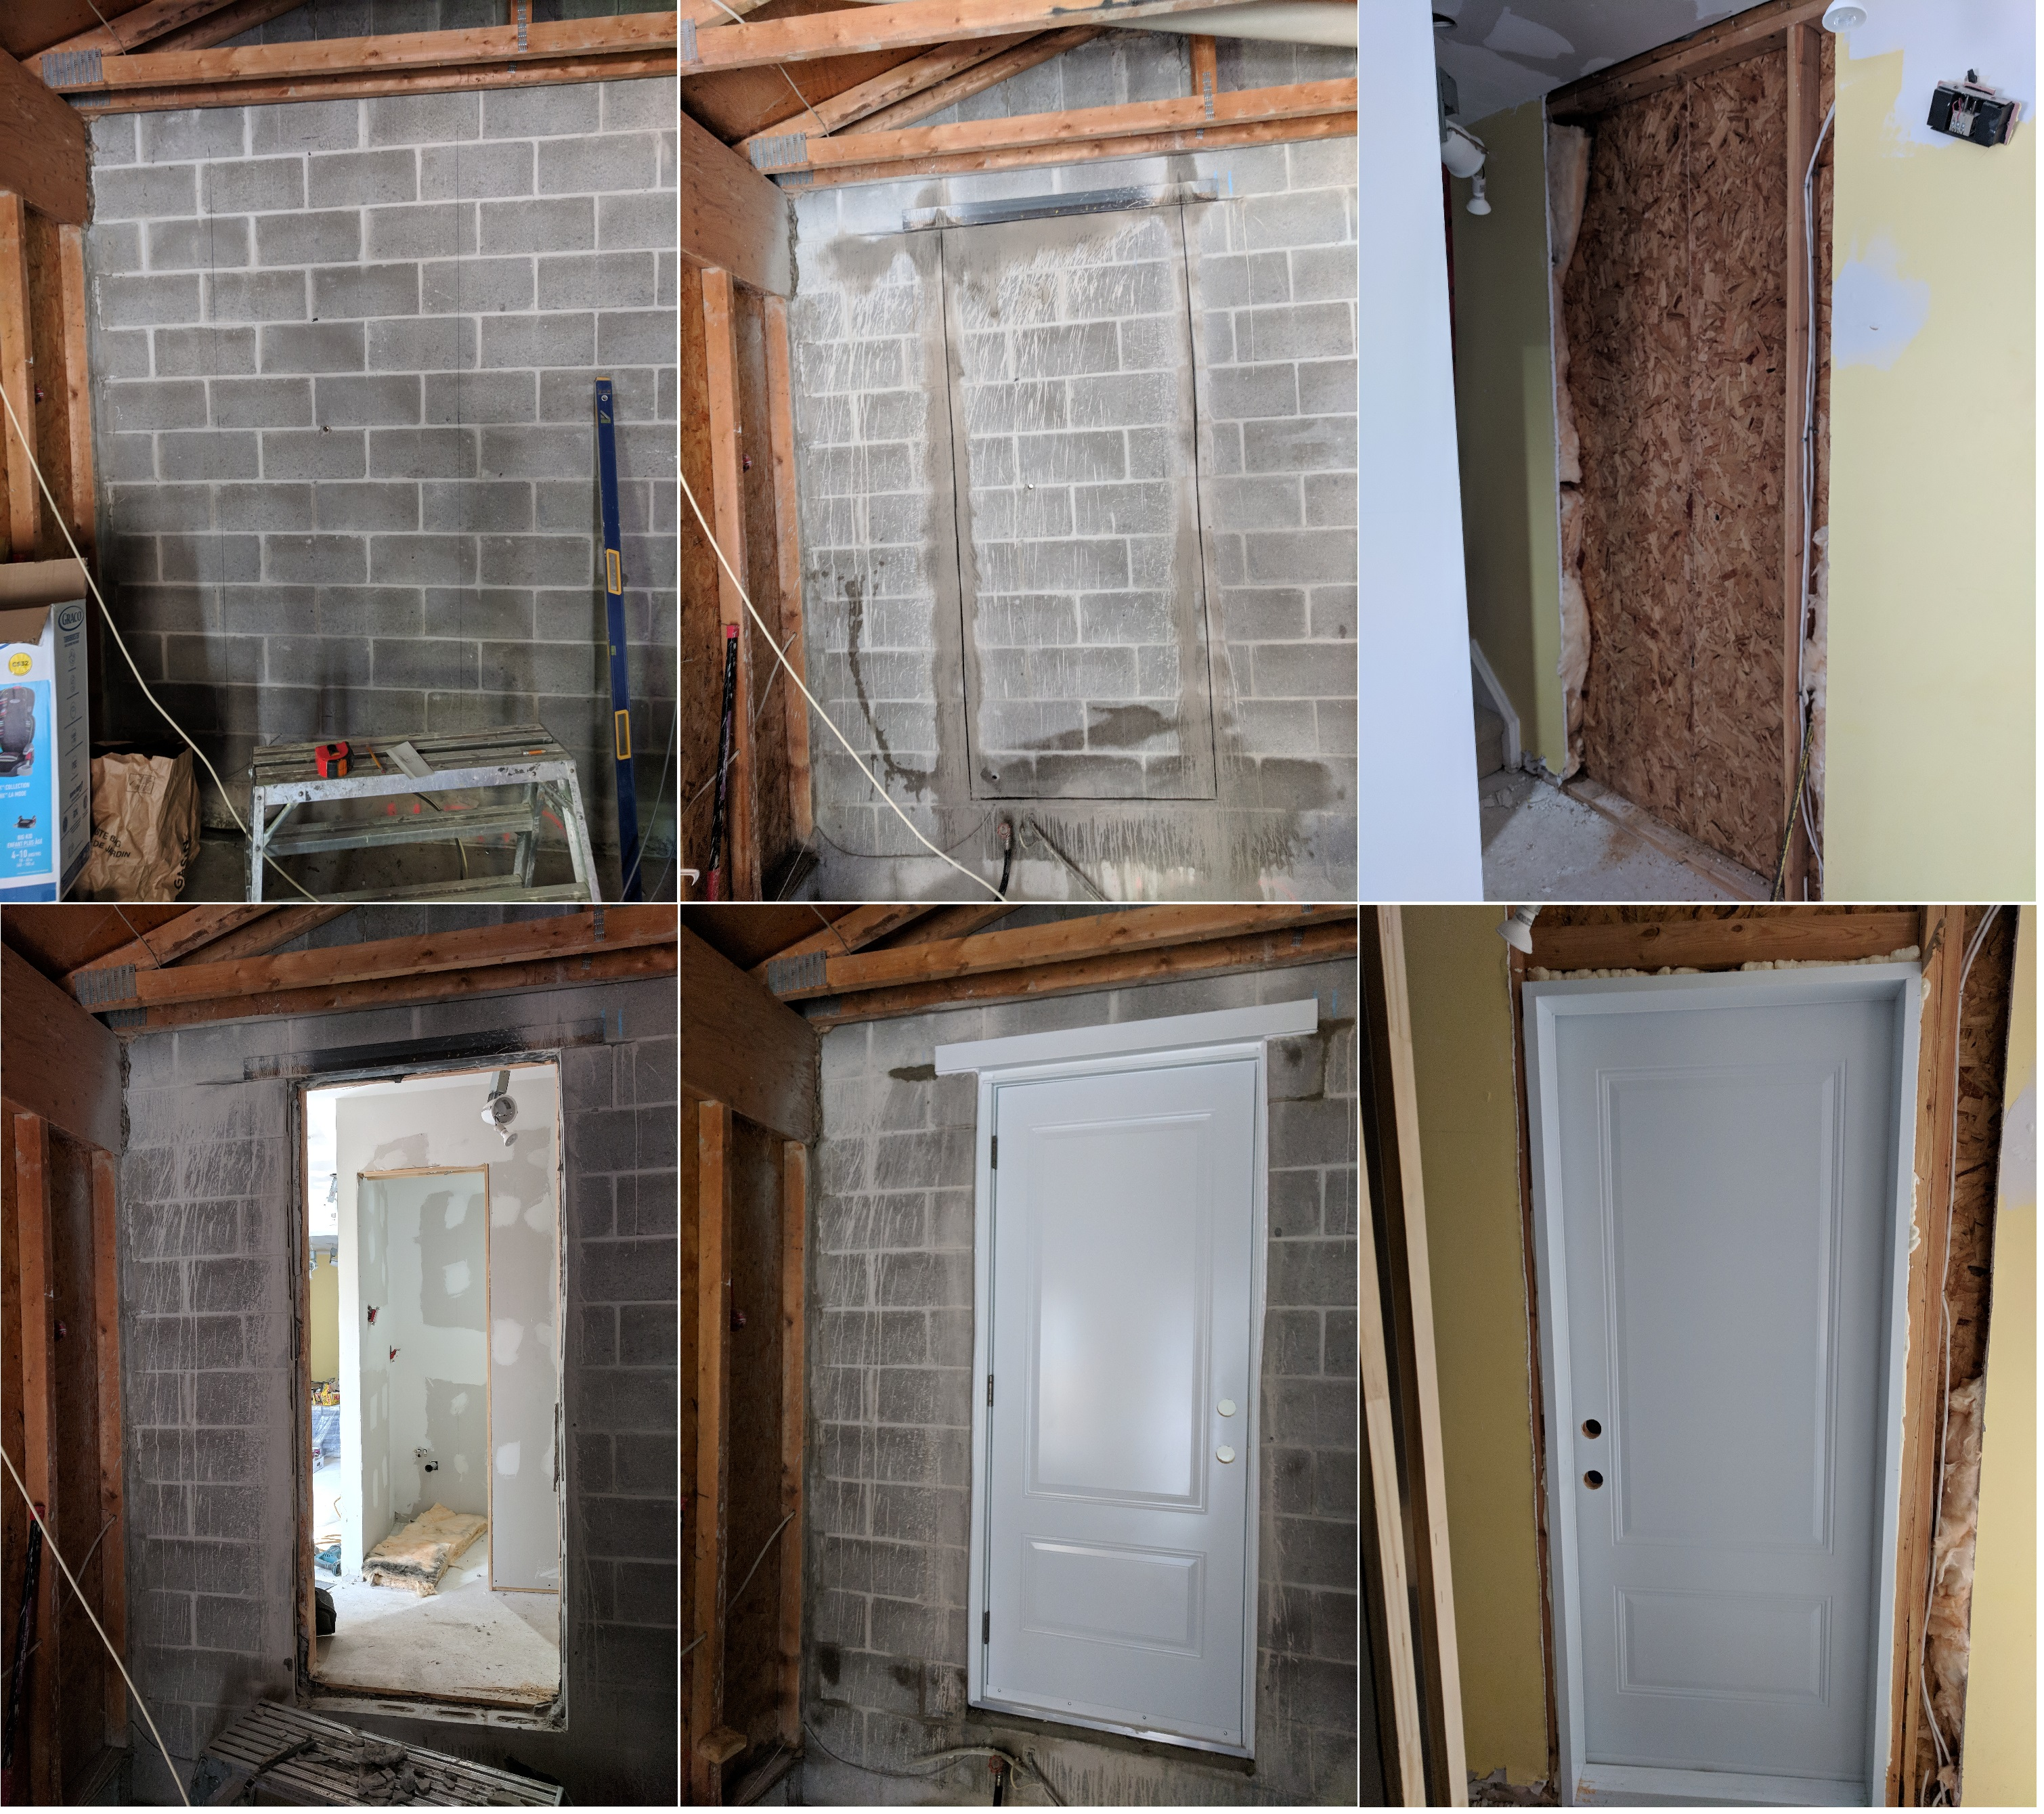 Garage to the house entrance. Separate entrance. Make a new wall opening for a door. Concrete cement blocks cutting. Lintel installation. When I open a drywall run into electrical. Had to move the door sideways. Door installation. Capping flashing outside.